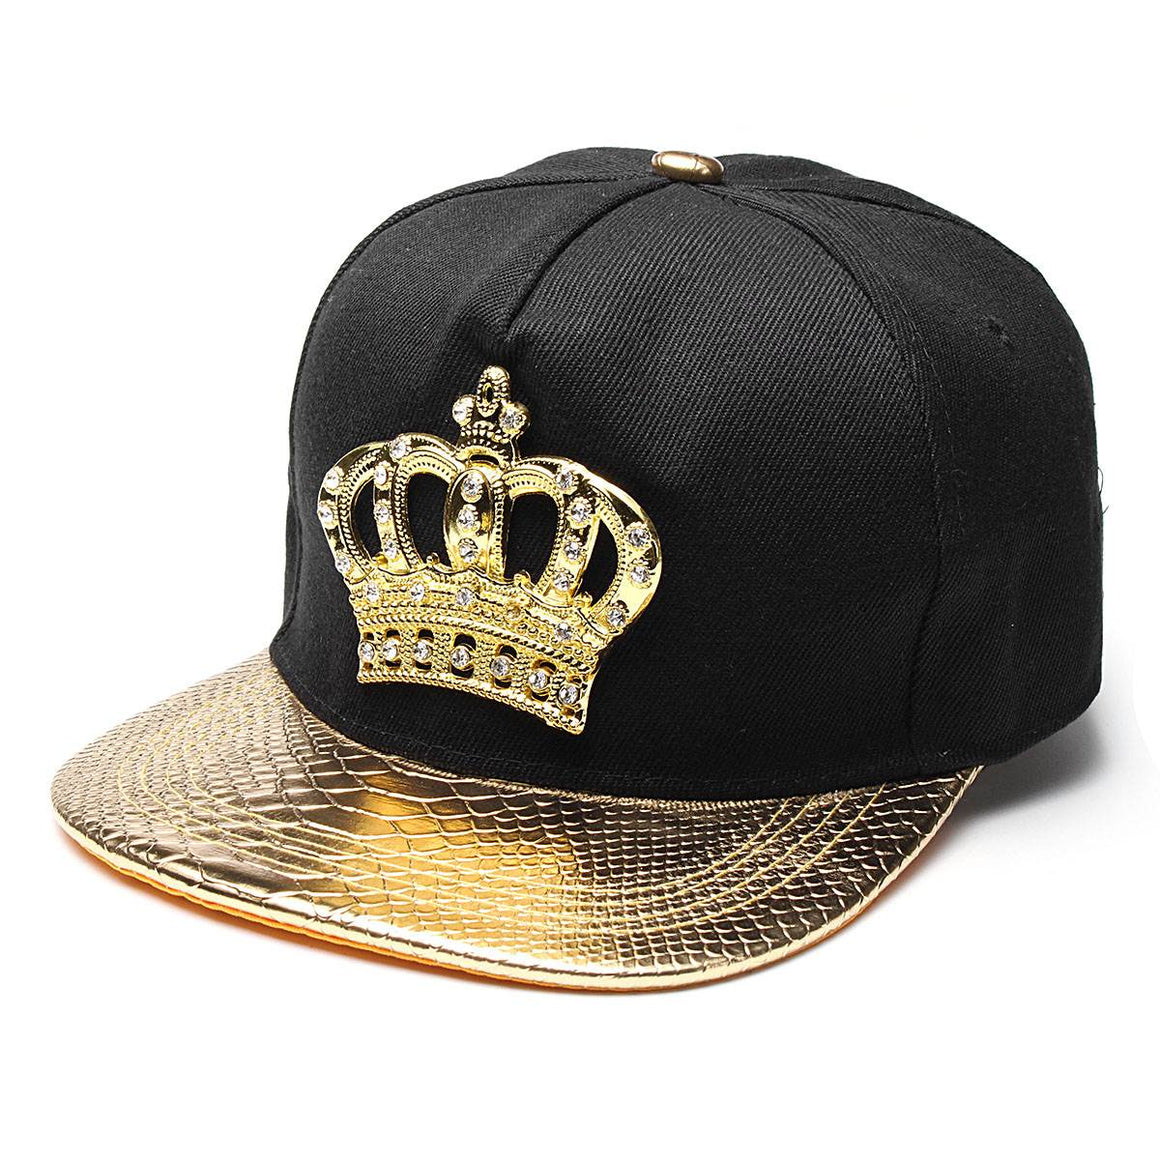 KING Crown Baseball Caps Adjustable Hip Hop Hats Black Summer Peaked Rhinestone Crystal Sun Cap p3874